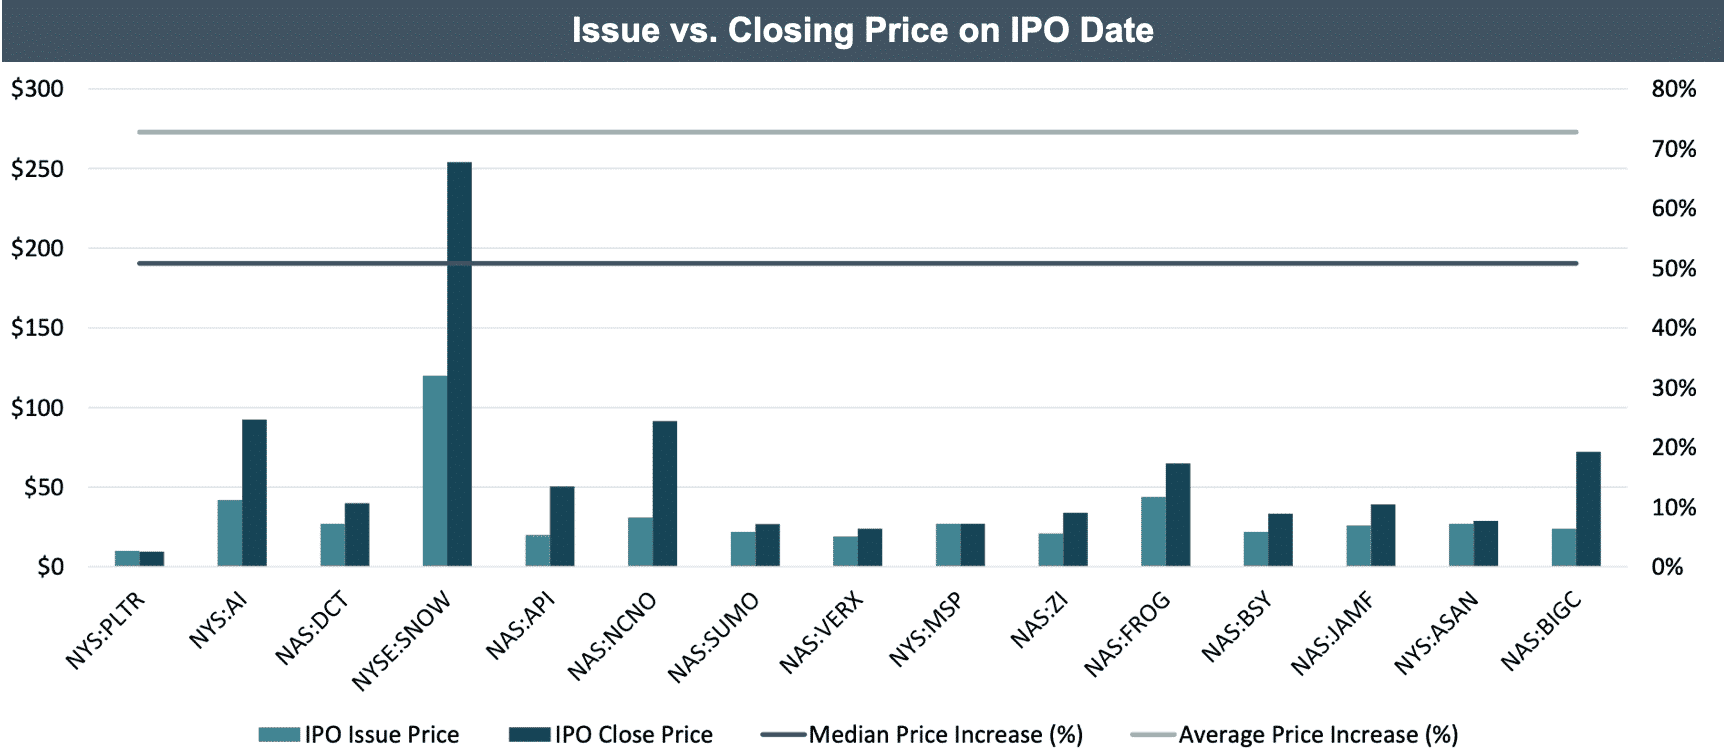 Issue vs. Closing Price on IPO Date